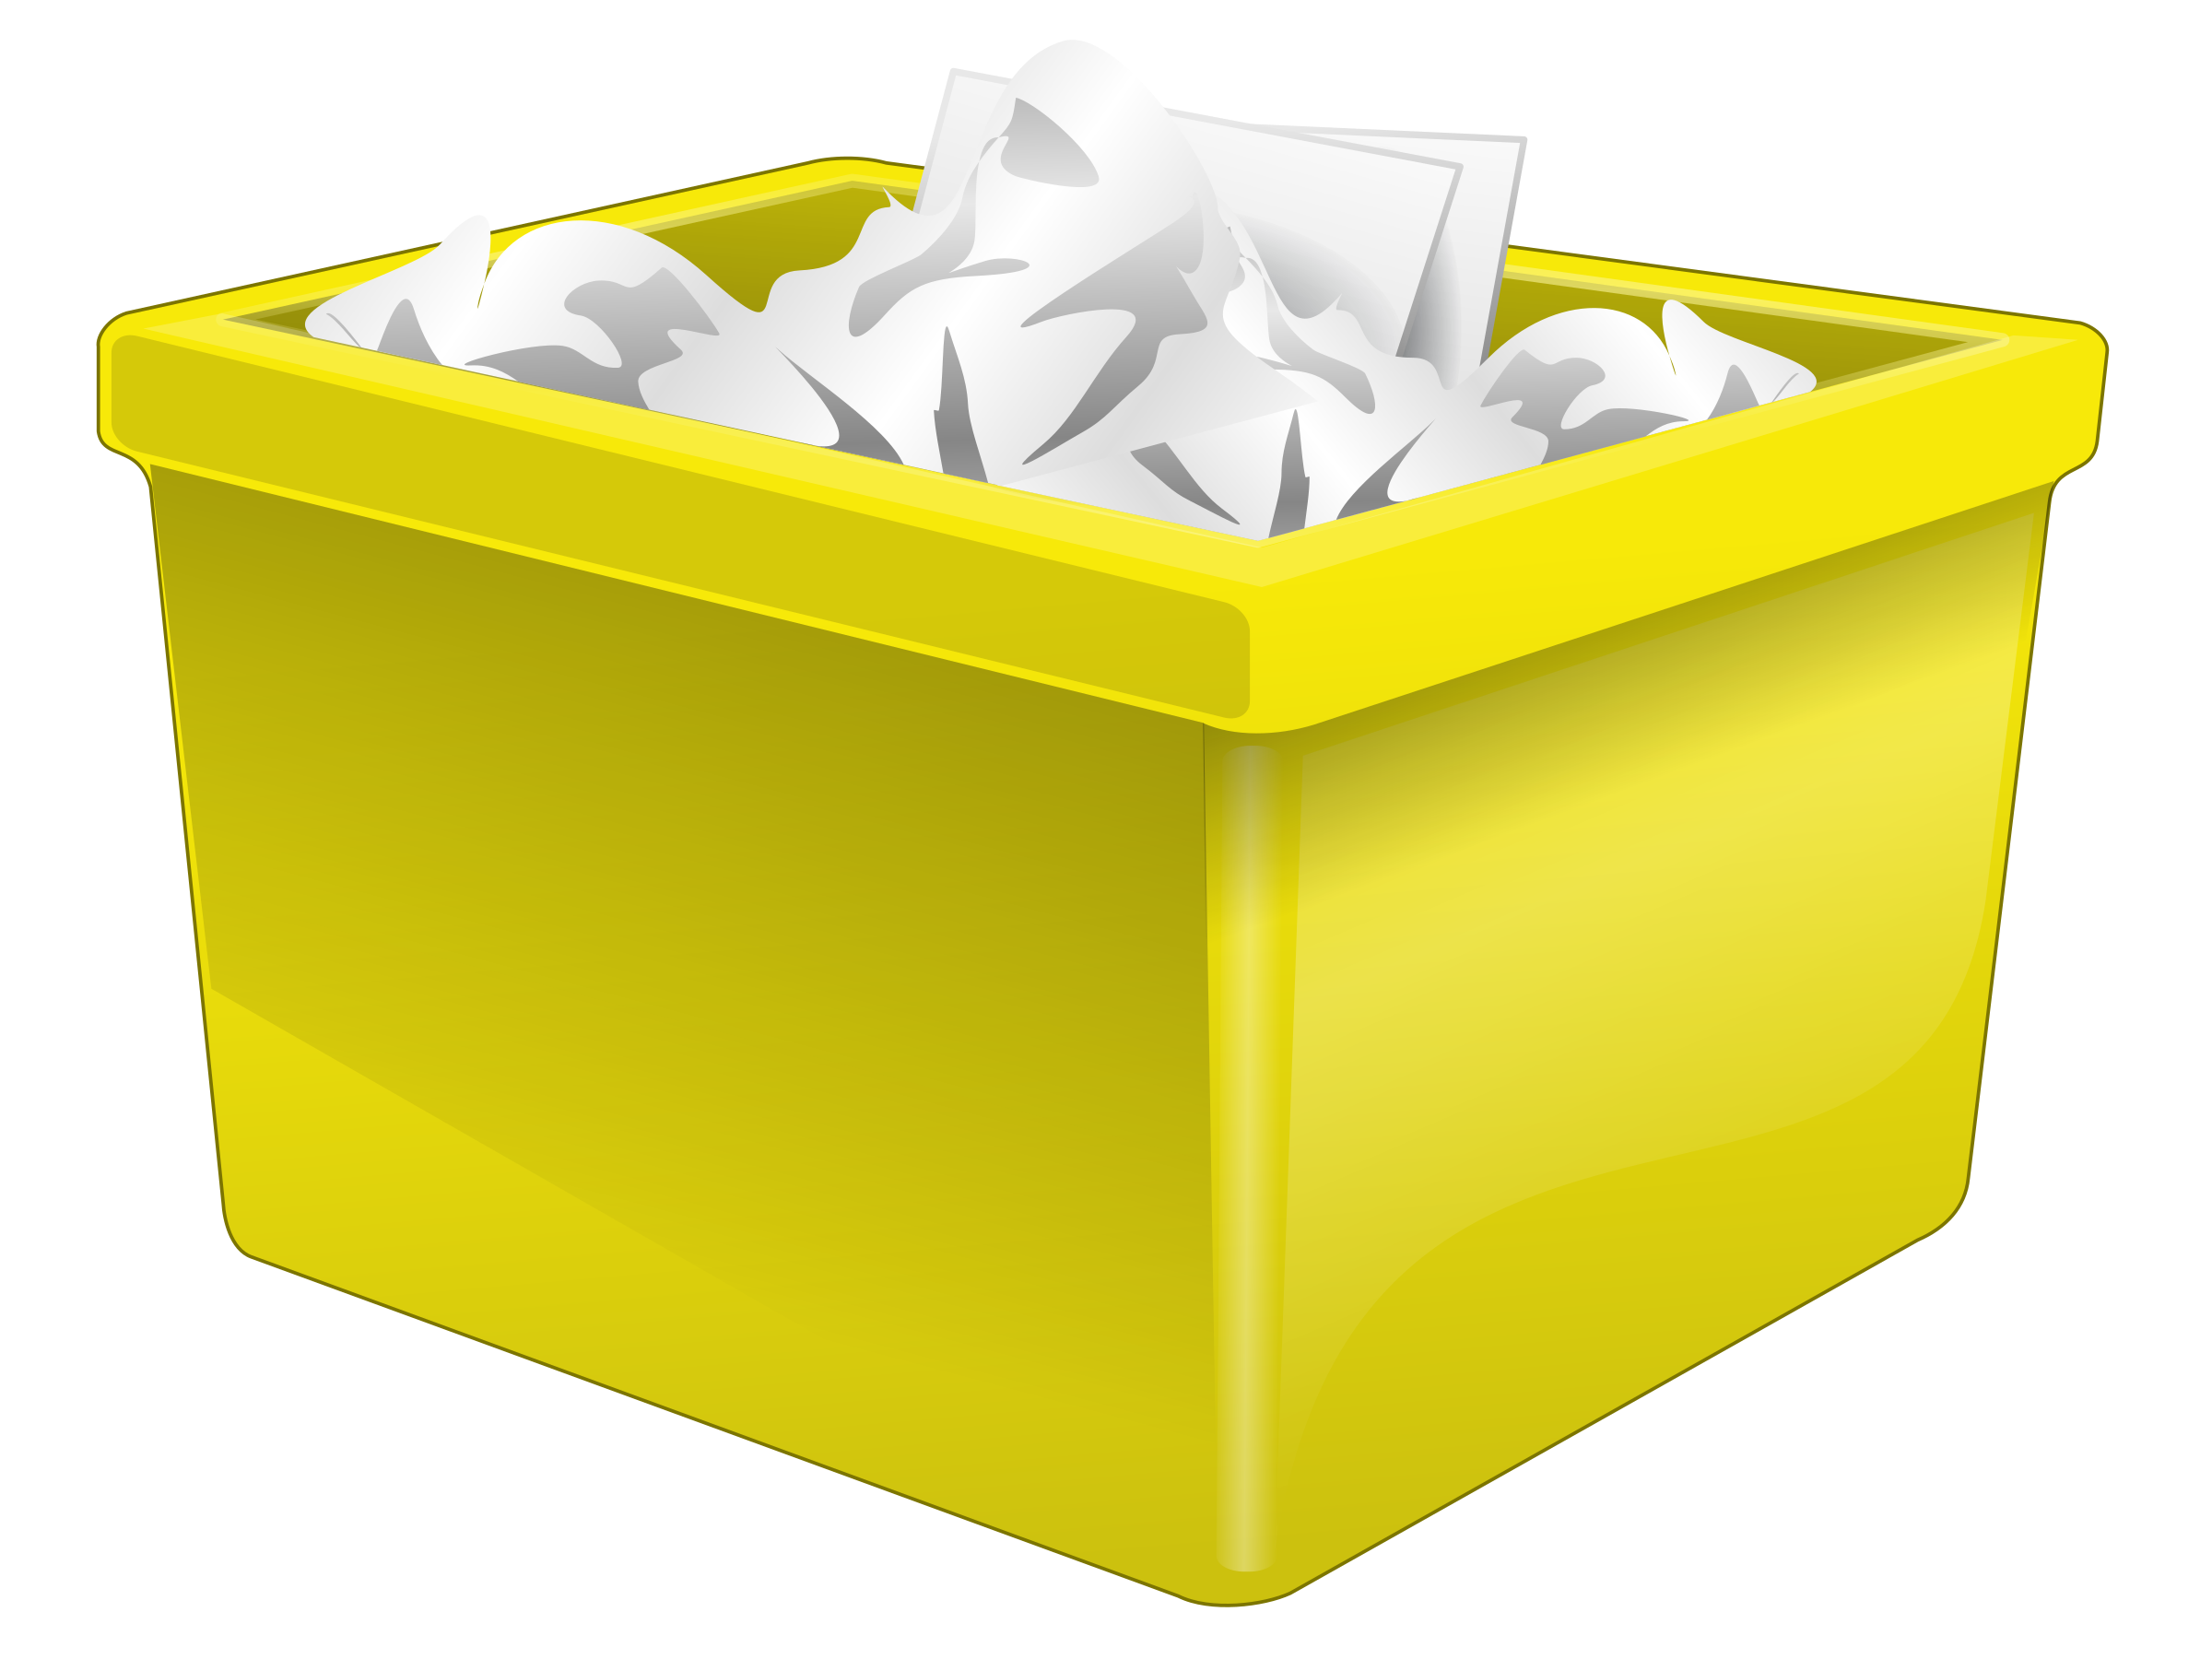 Yellow Plastic Box Filled With Paper by qubodup